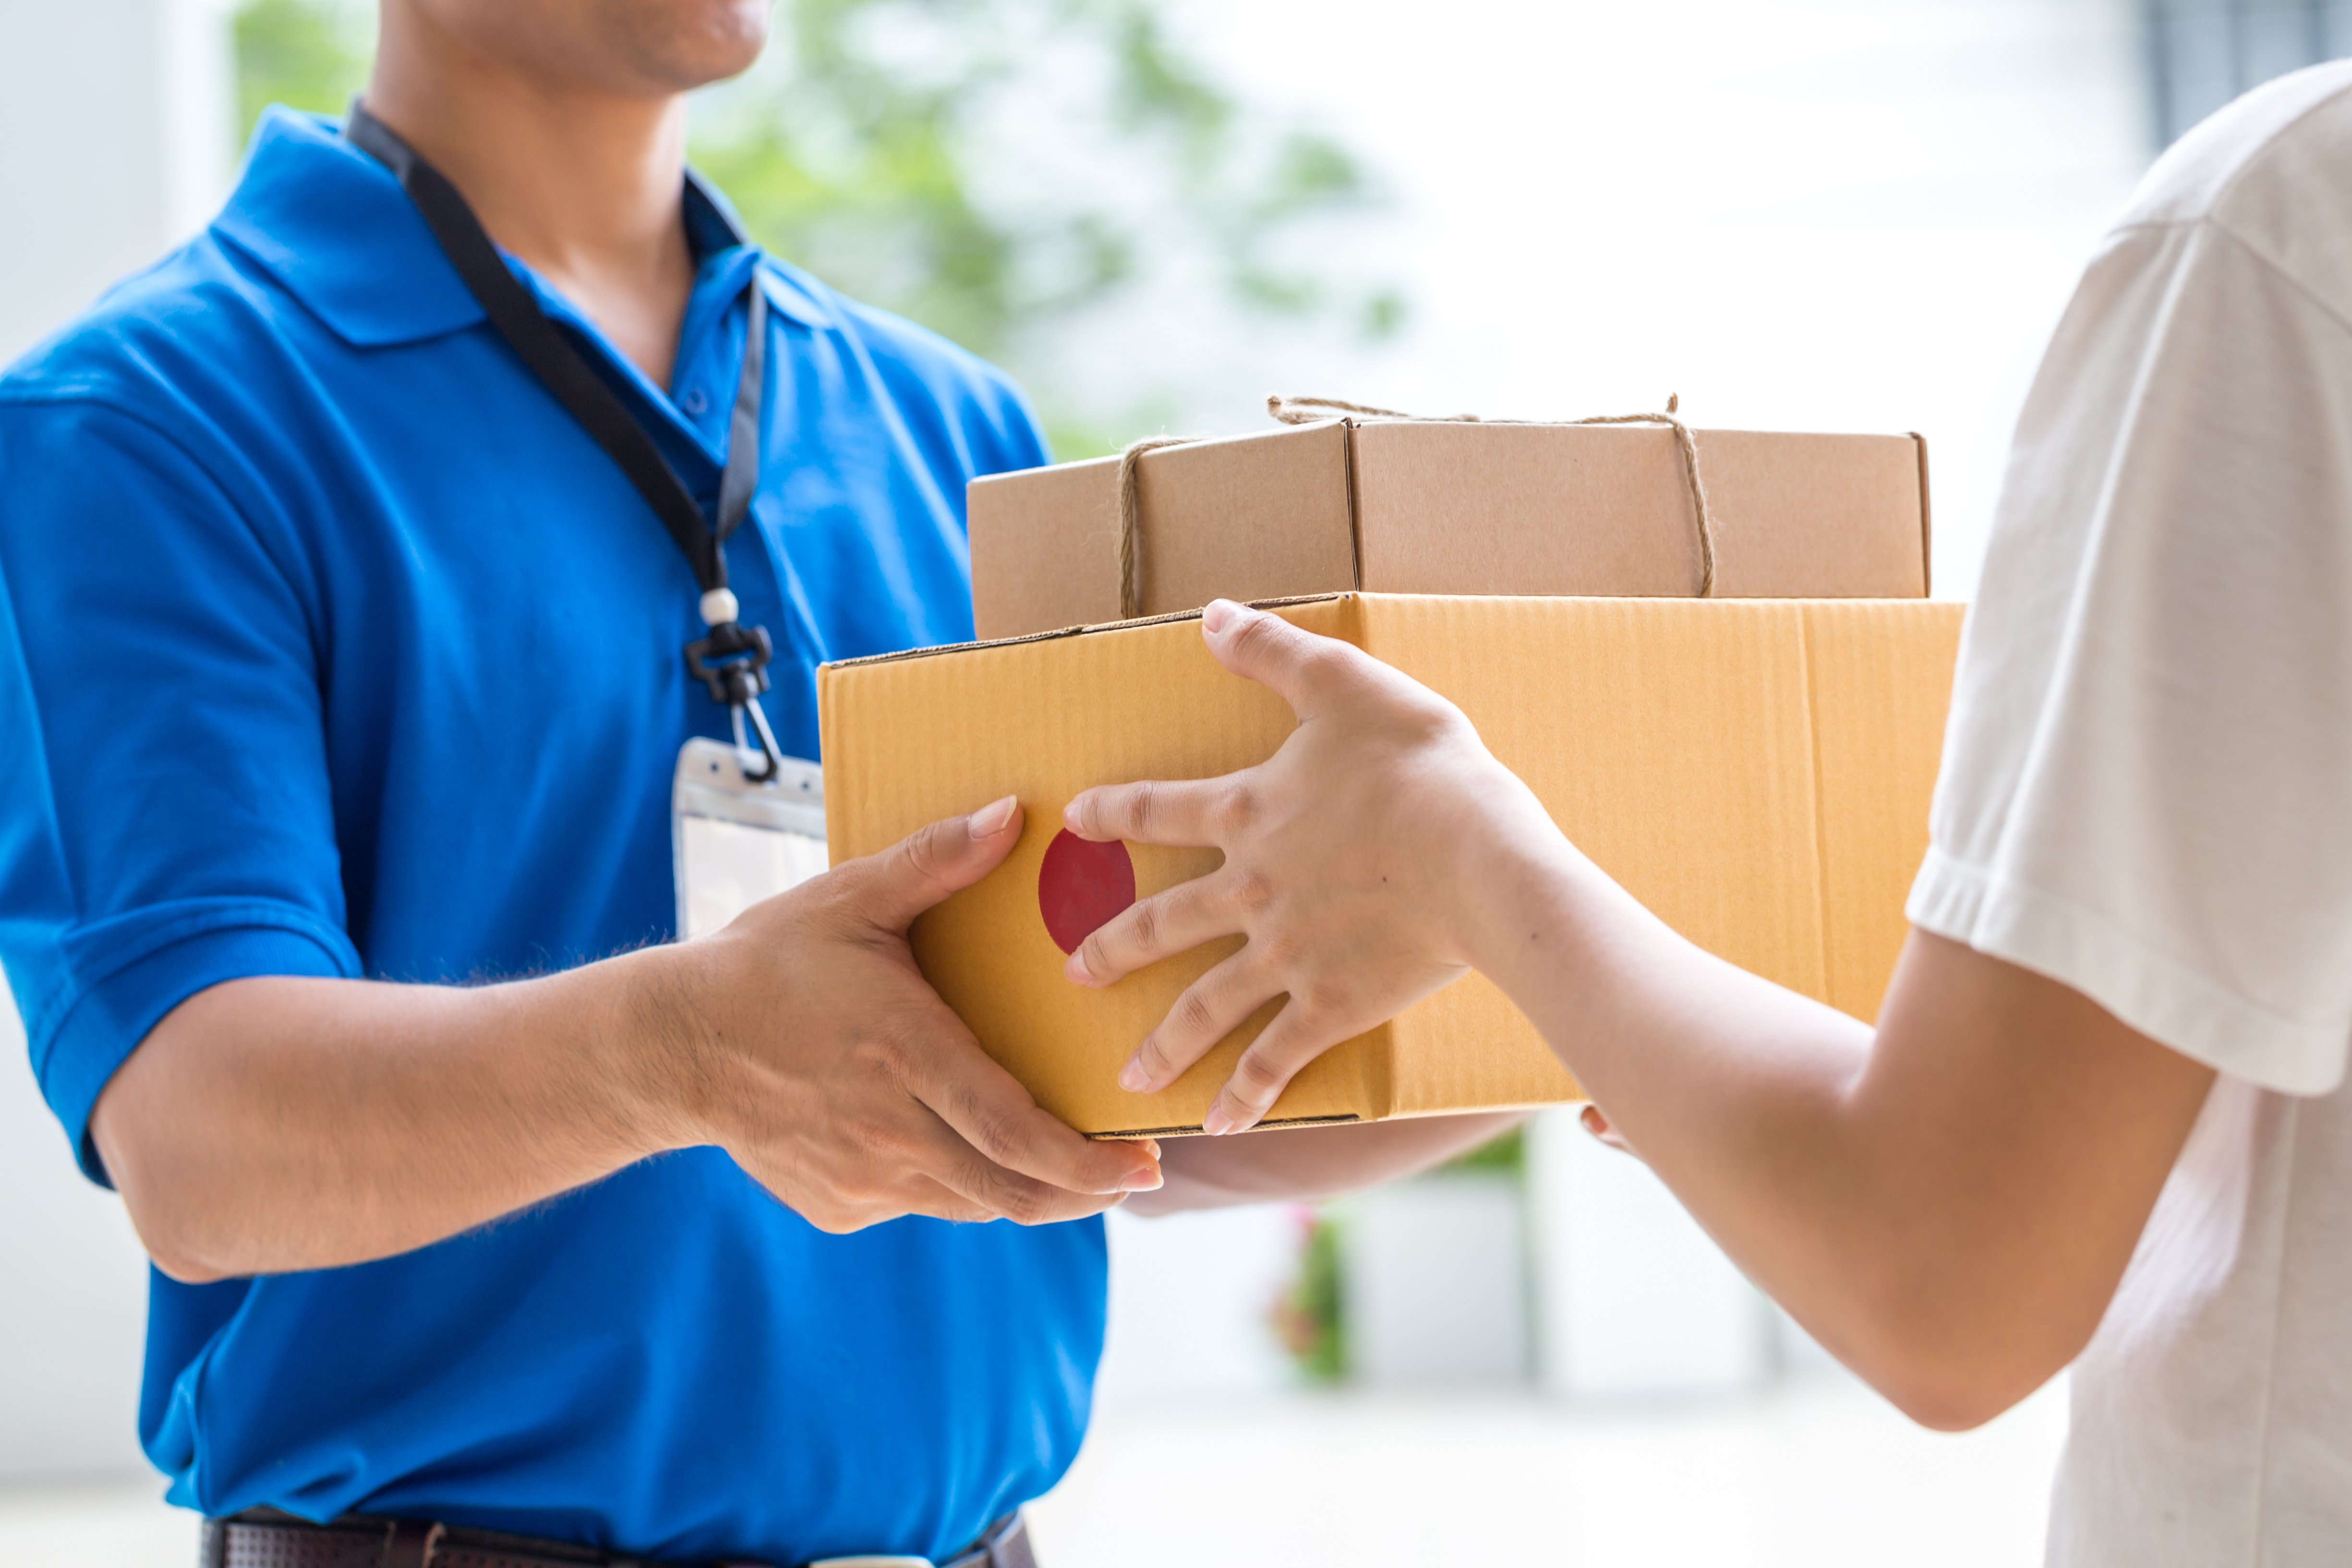 Package being deliverd - How to Ship Jewelry